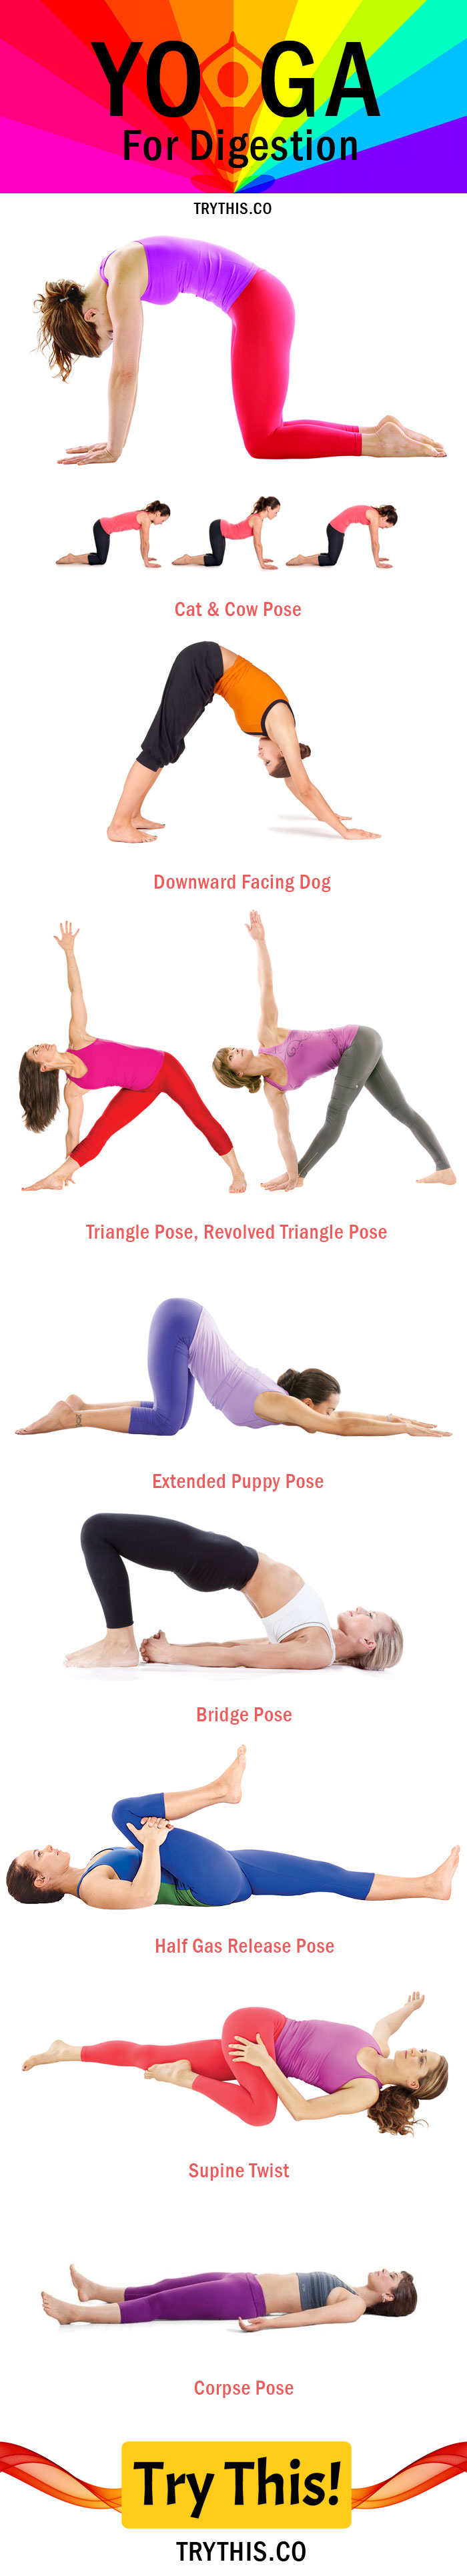 Yoga For Digestion